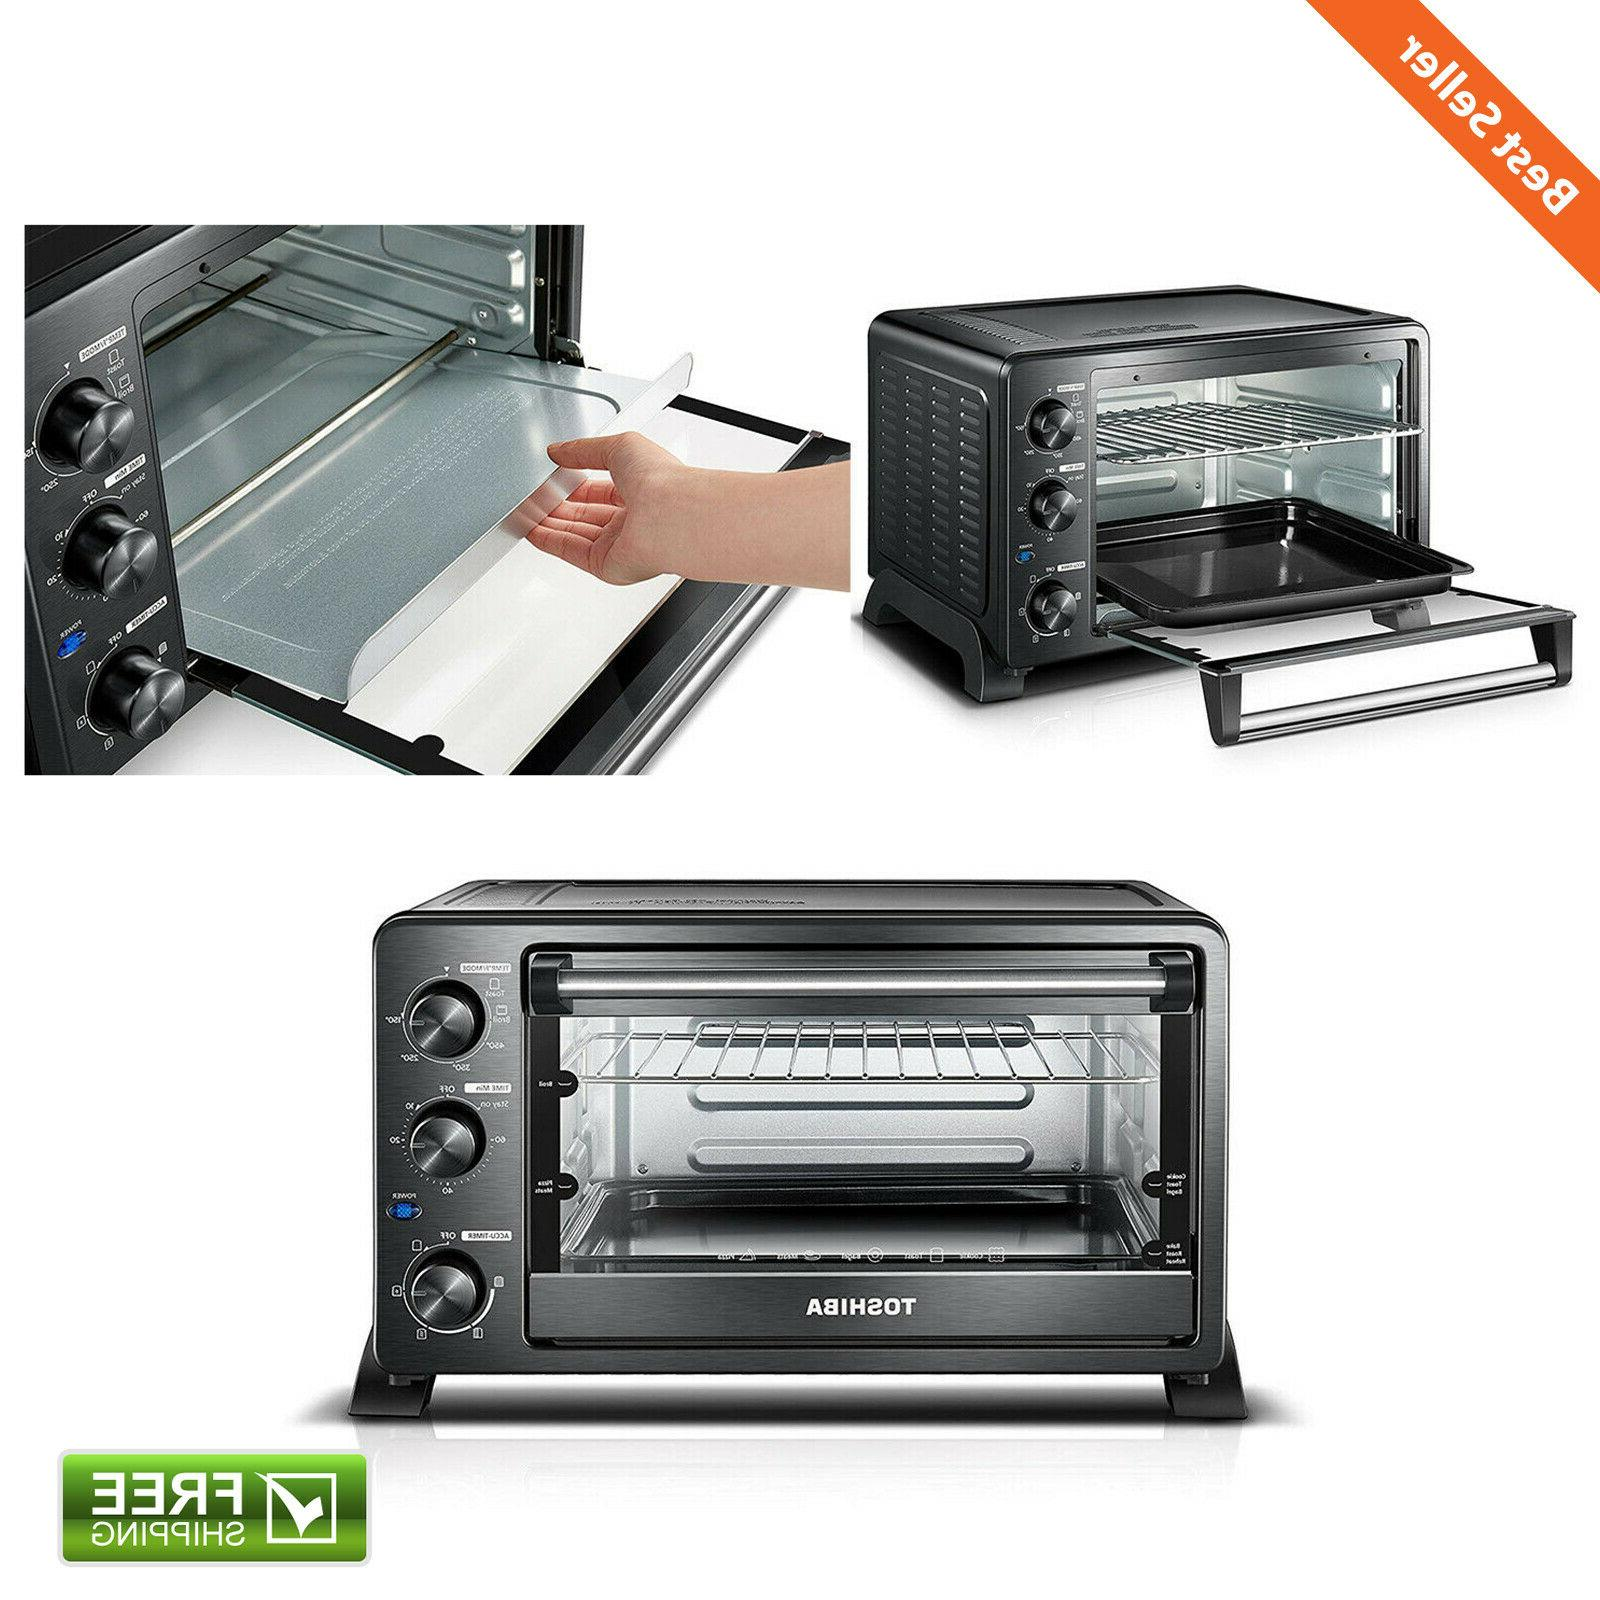 mechanical countertop convection oven compact fast food